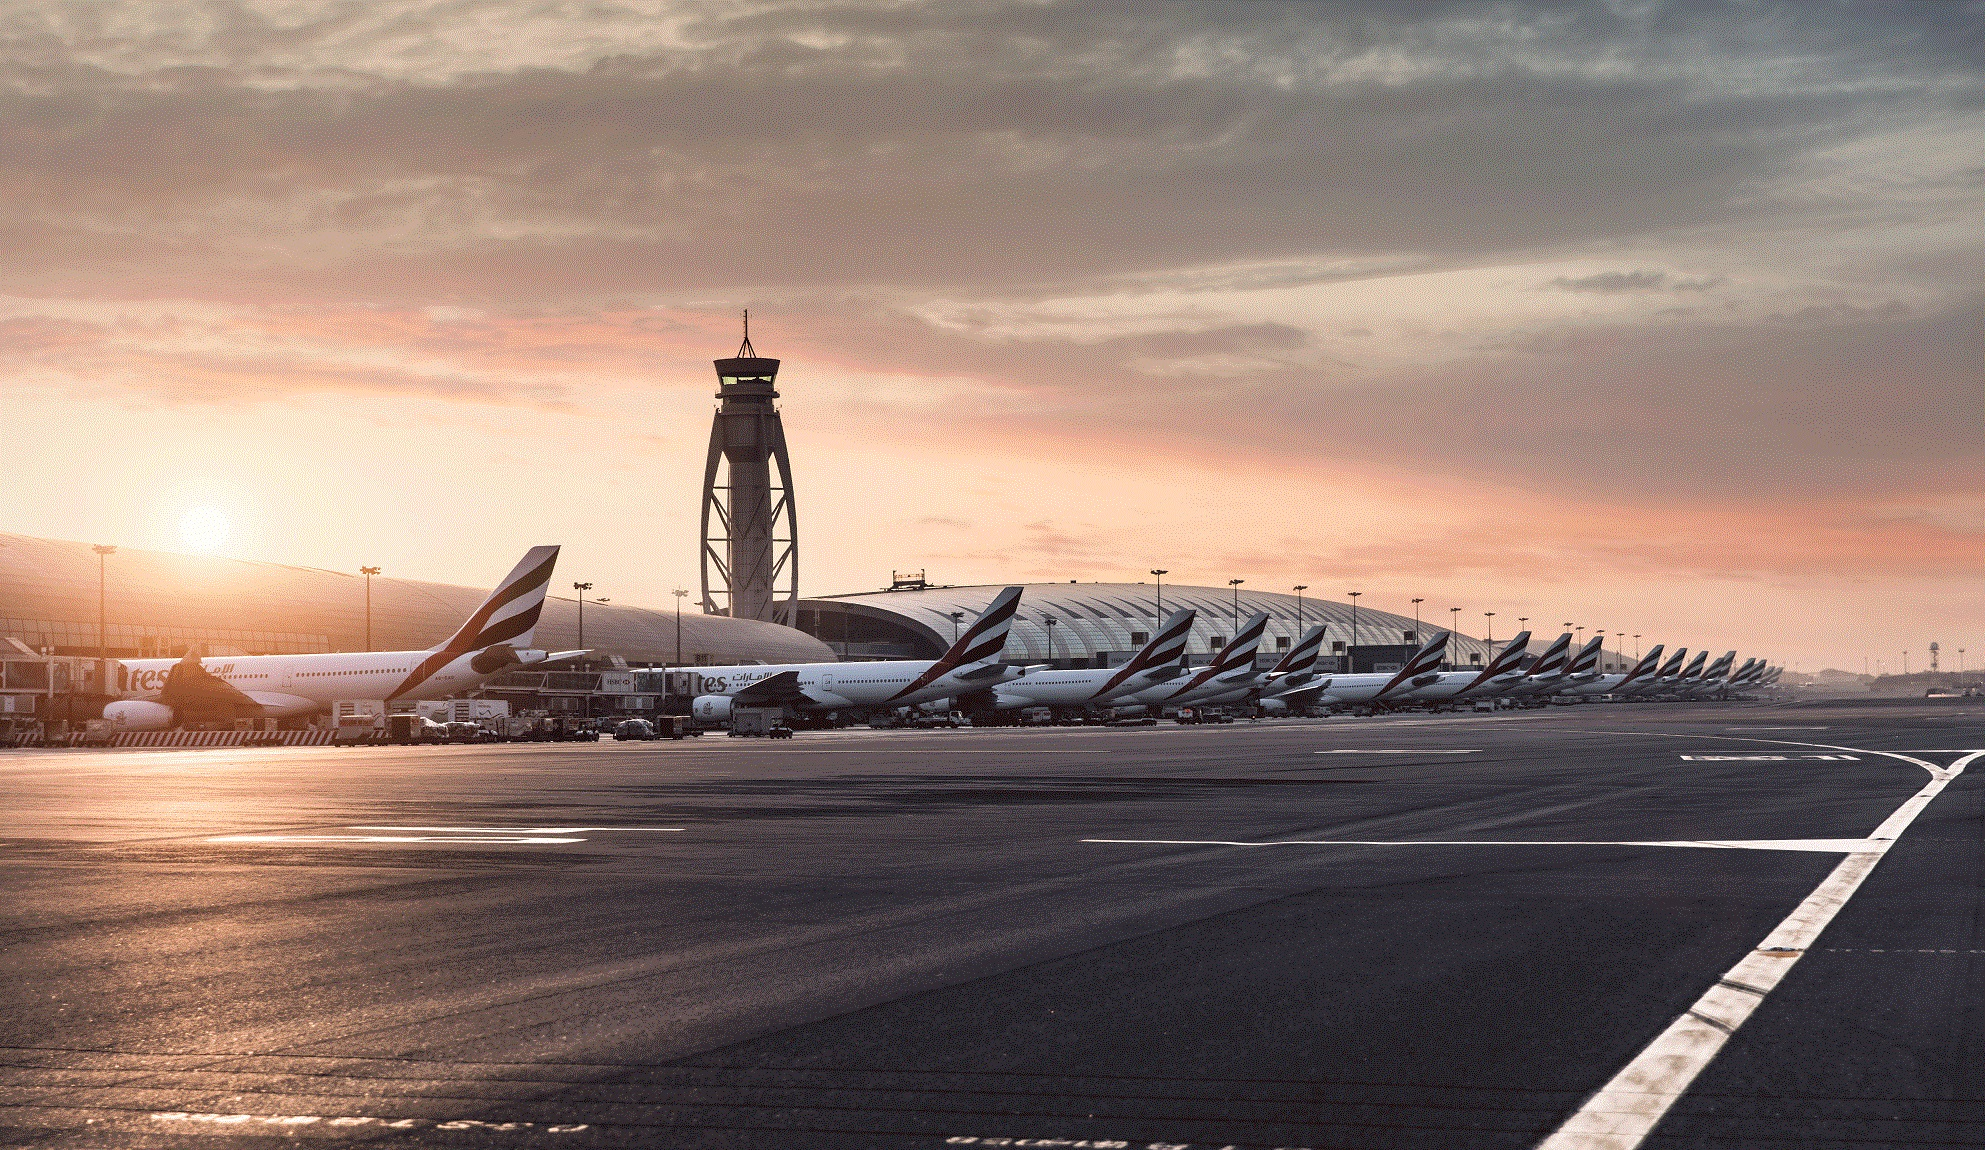 Dubai airport traffic will increase sharply once Covid-19 solution found, says Paul Griffiths